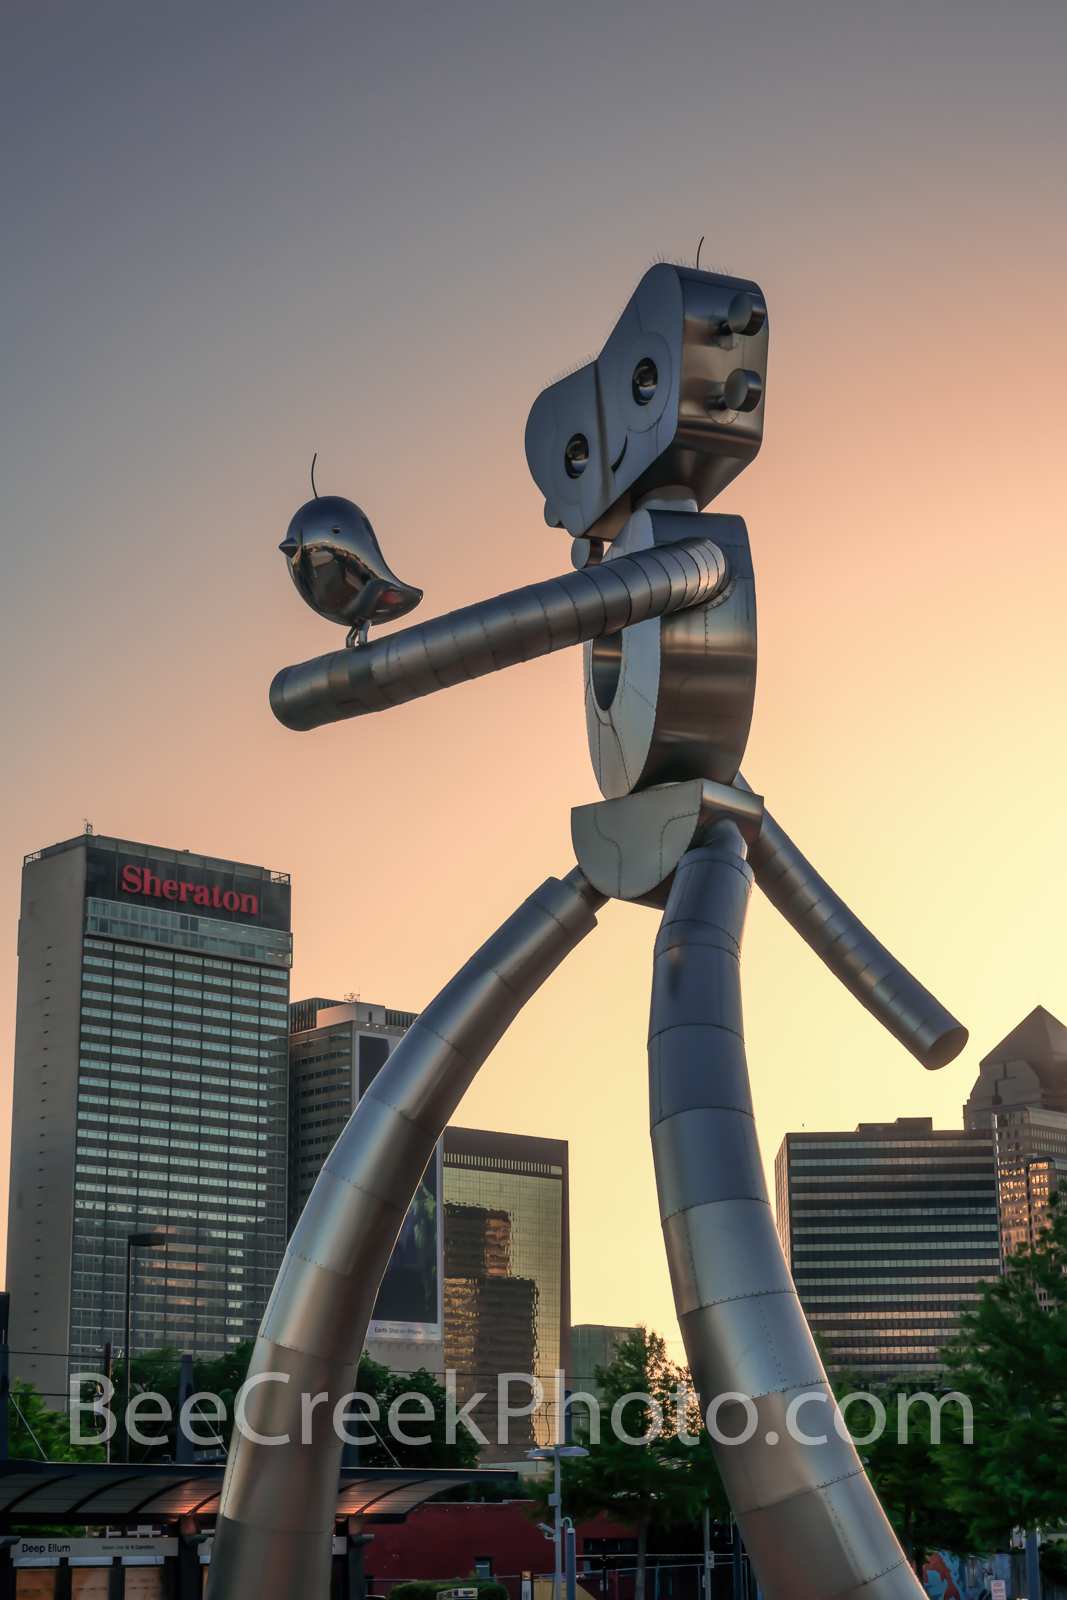 Dallas, traveling man, sunset, vertical, skyline, train, mass transit, scuplture, robot, stainless steel, rivets, guitar, music, strolling, Deep Ellum, cityscape, cityscapes, images of dallas, photos , photo